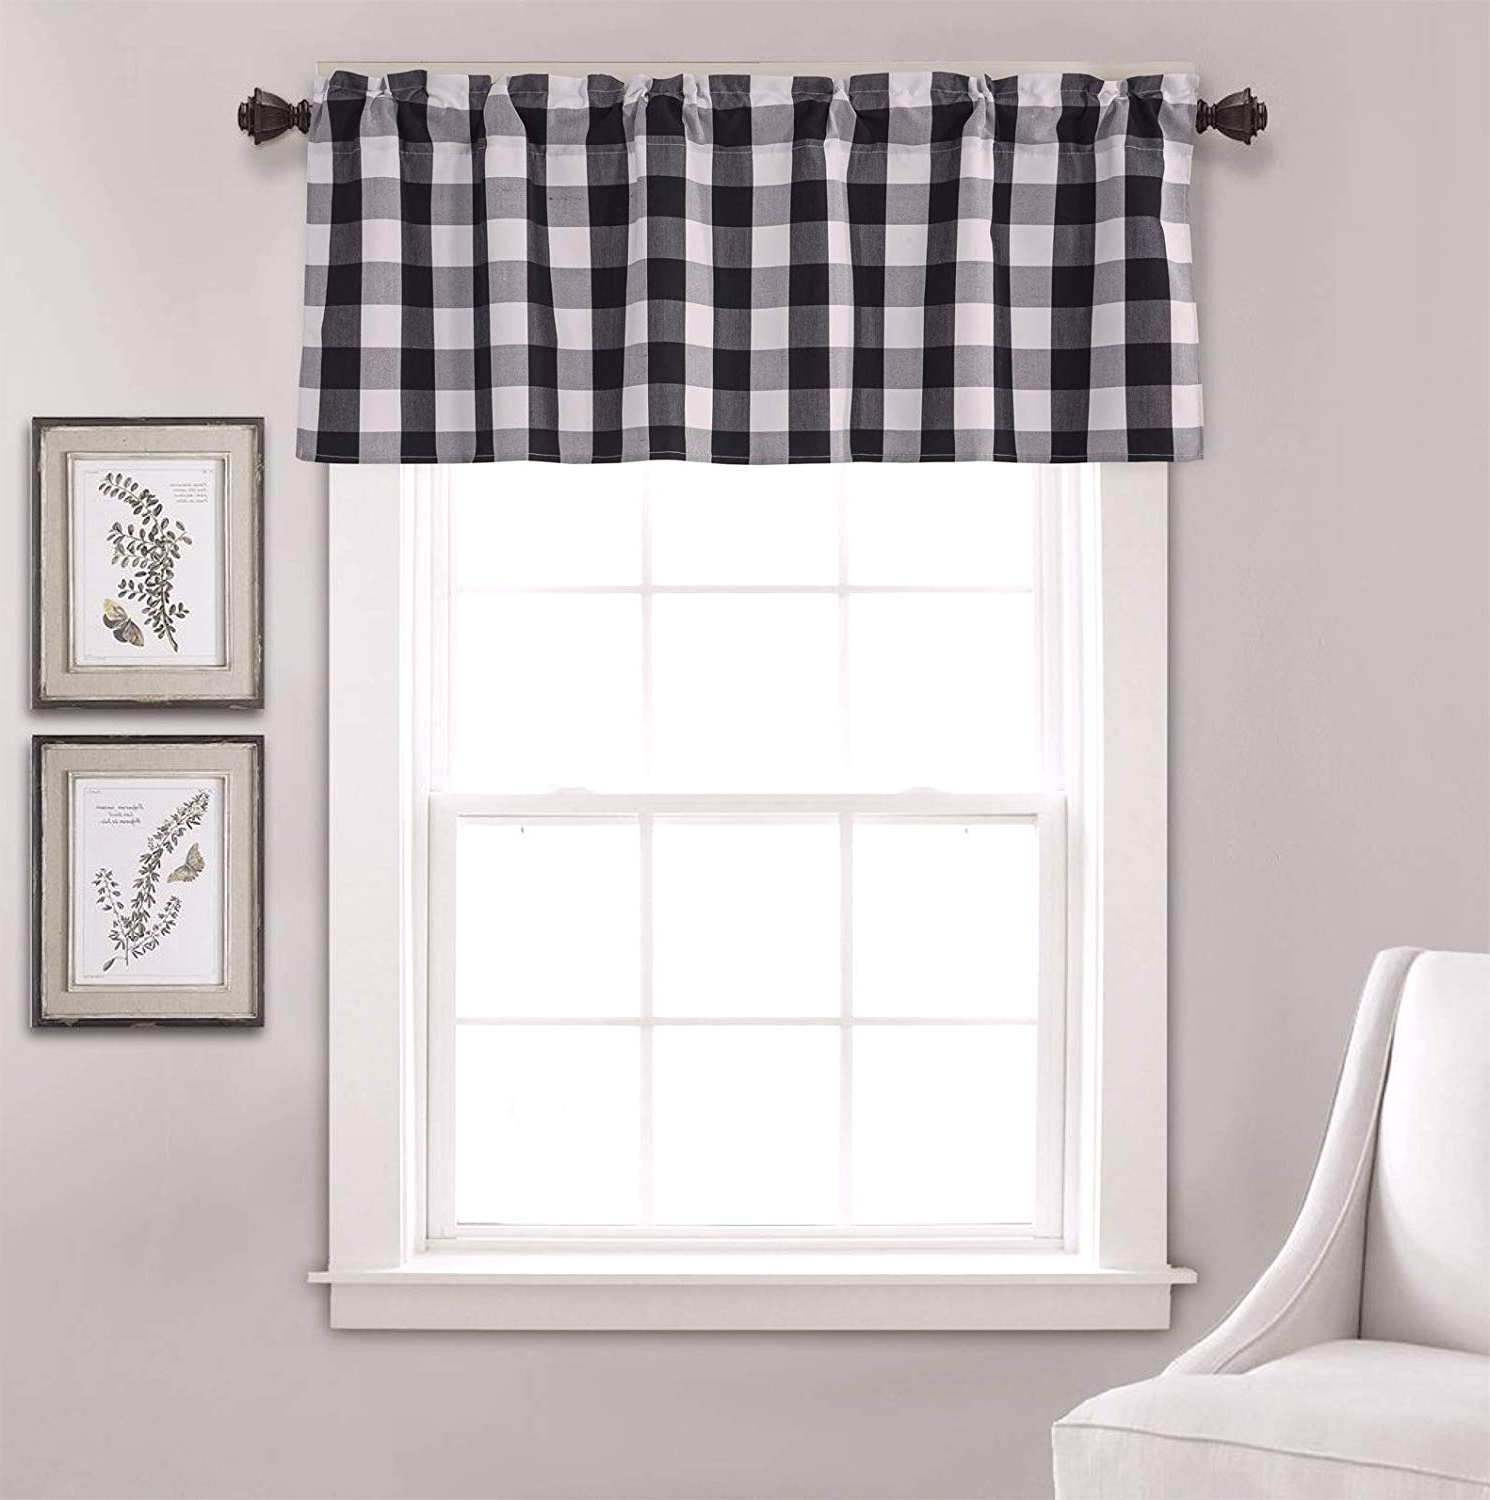 Annlaite Buffalo Checker Farmhouse Thermal Insulated Energy Saving Window Curtain Valance For Living Room/bedroom/kitchen Rod Pocket Valance 5218 For Widely Used Grandin Curtain Valances In Black (View 8 of 20)